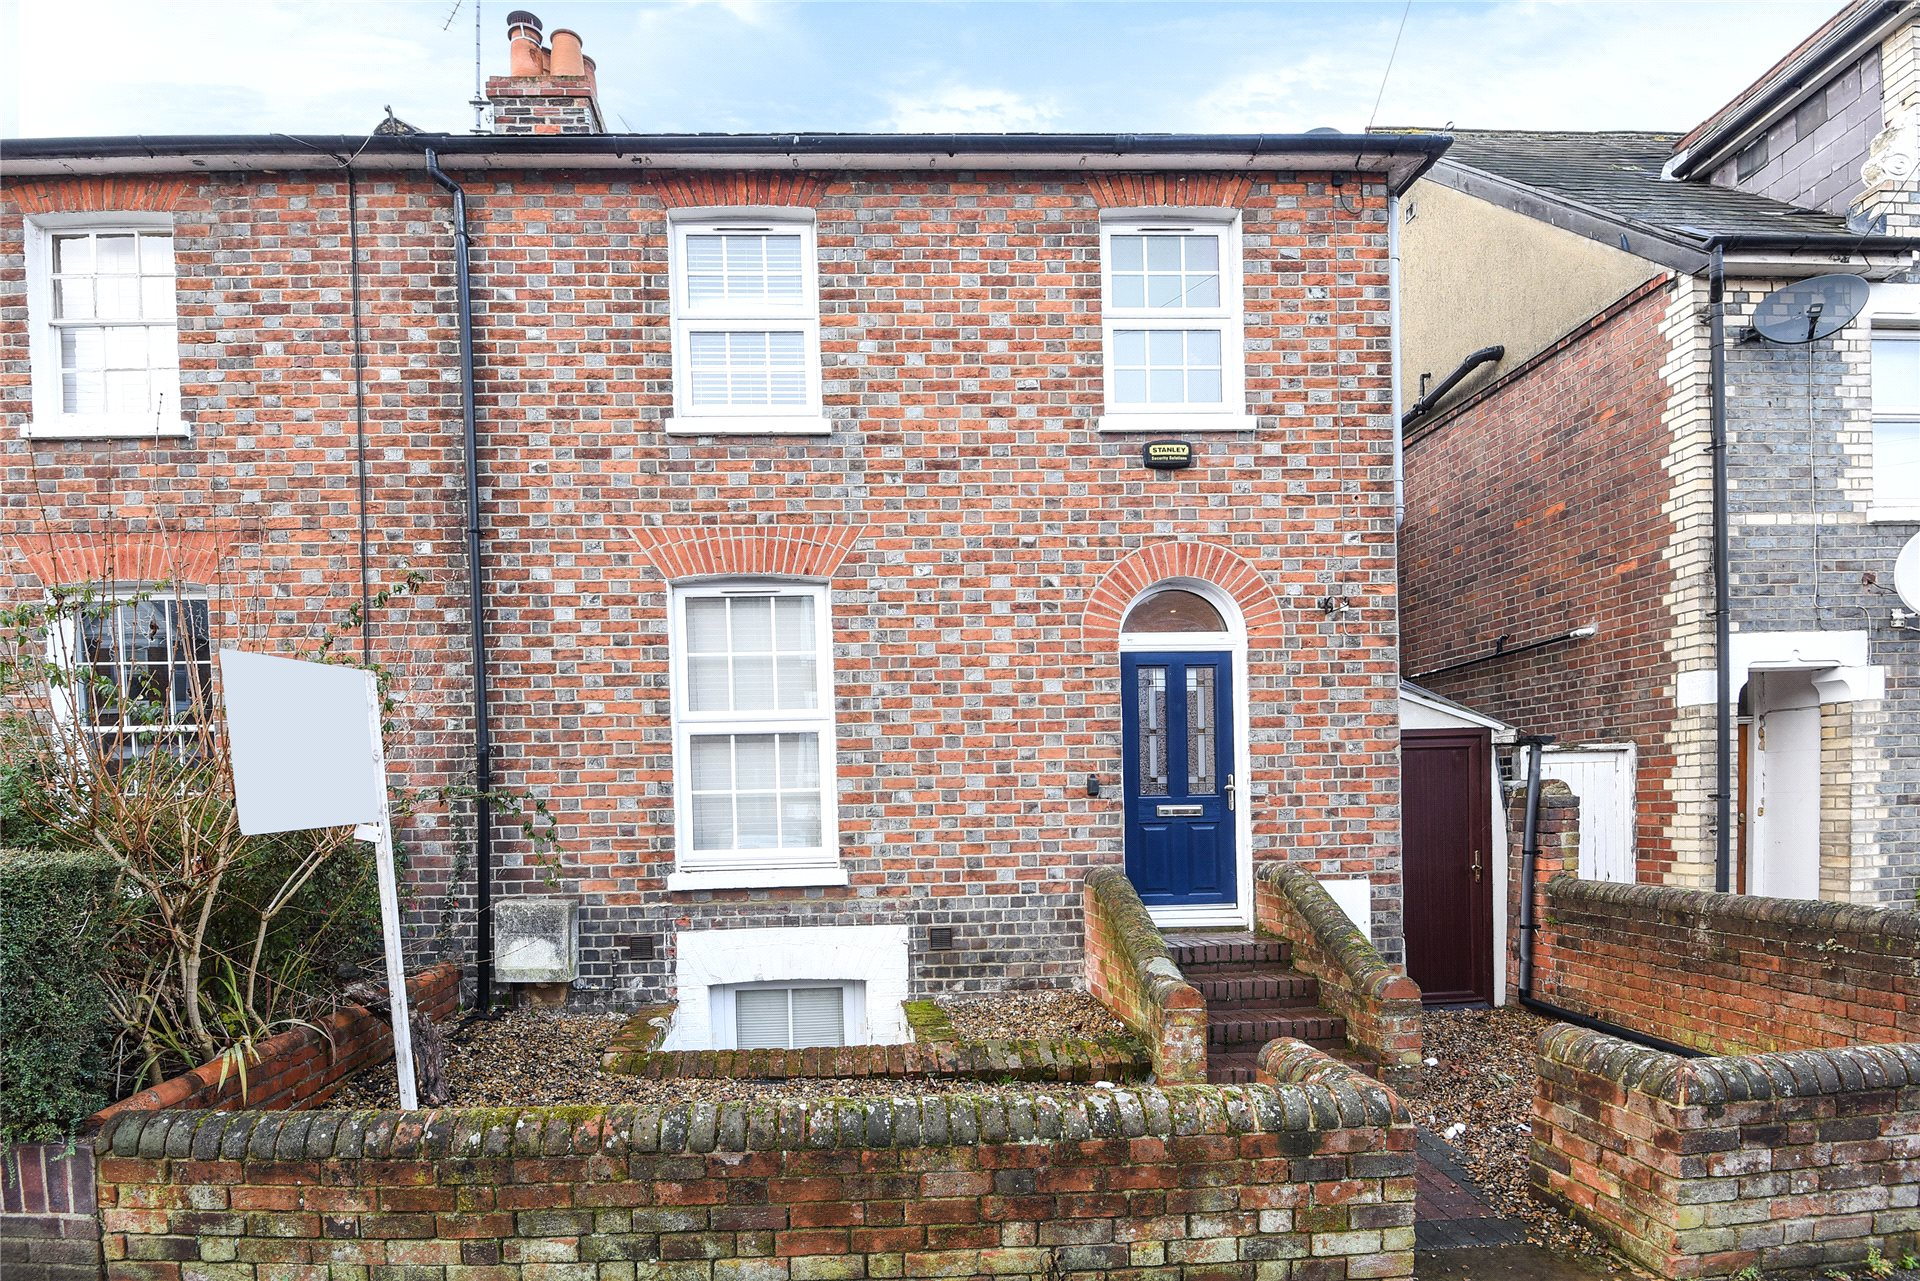 4 Bedrooms Semi Detached House for sale in Argyle Street, Reading, Berkshire, RG1